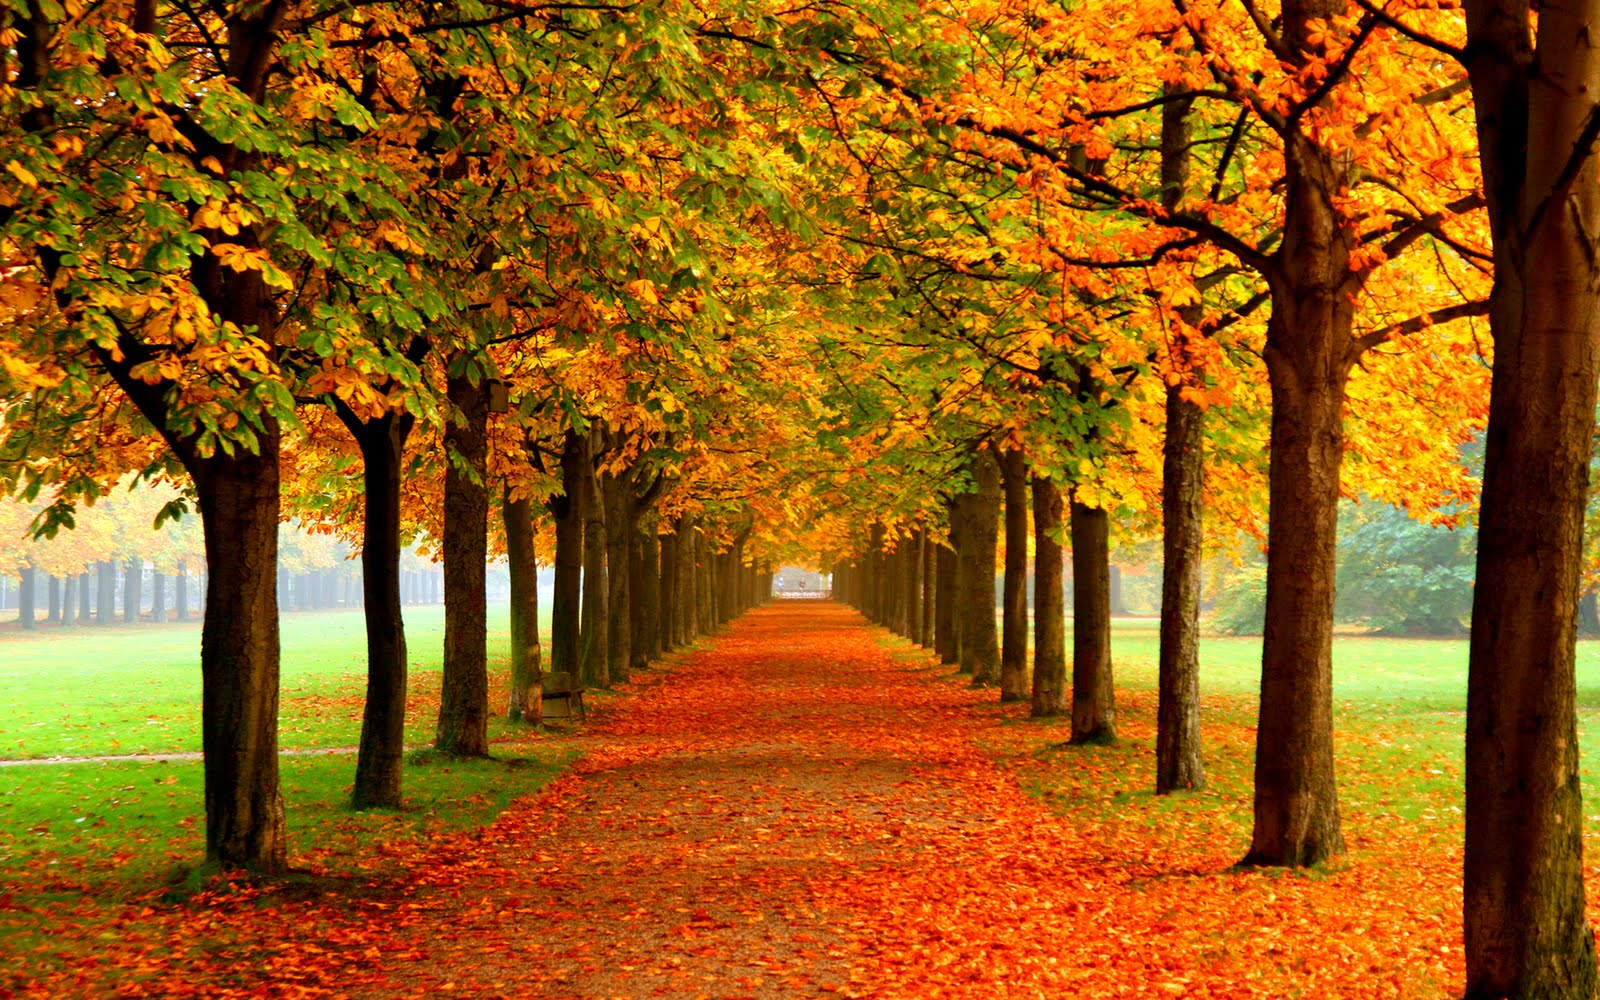 Authum Leaf Widescreen Wallpaper, Nice Background For Your